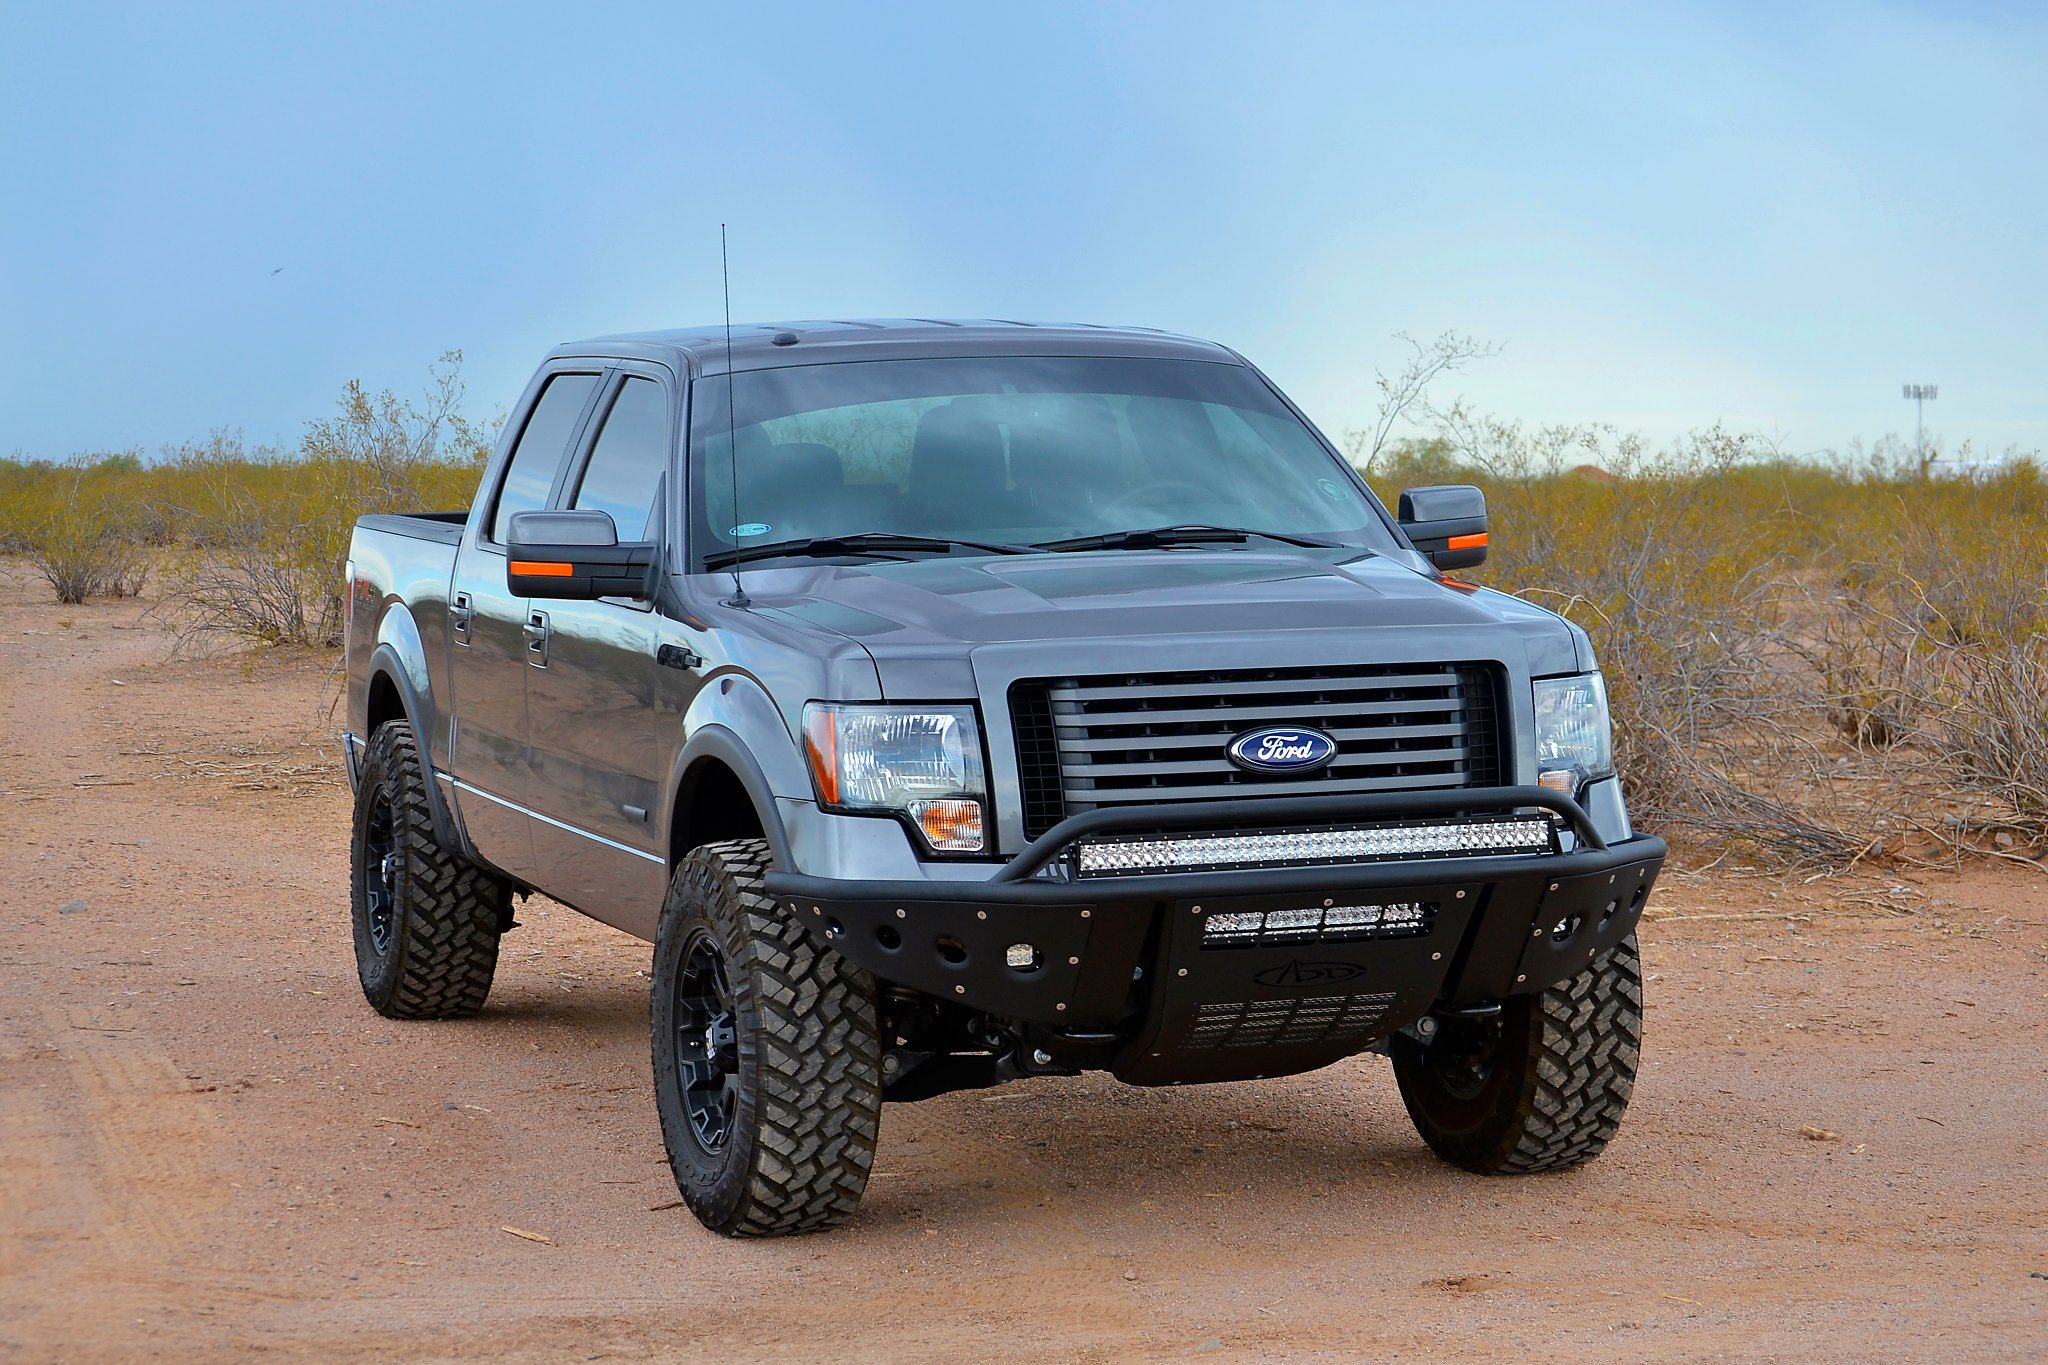 ford f150 ecoboost stealth front bumper truck pinterest ford ford trucks and vehicle. Black Bedroom Furniture Sets. Home Design Ideas